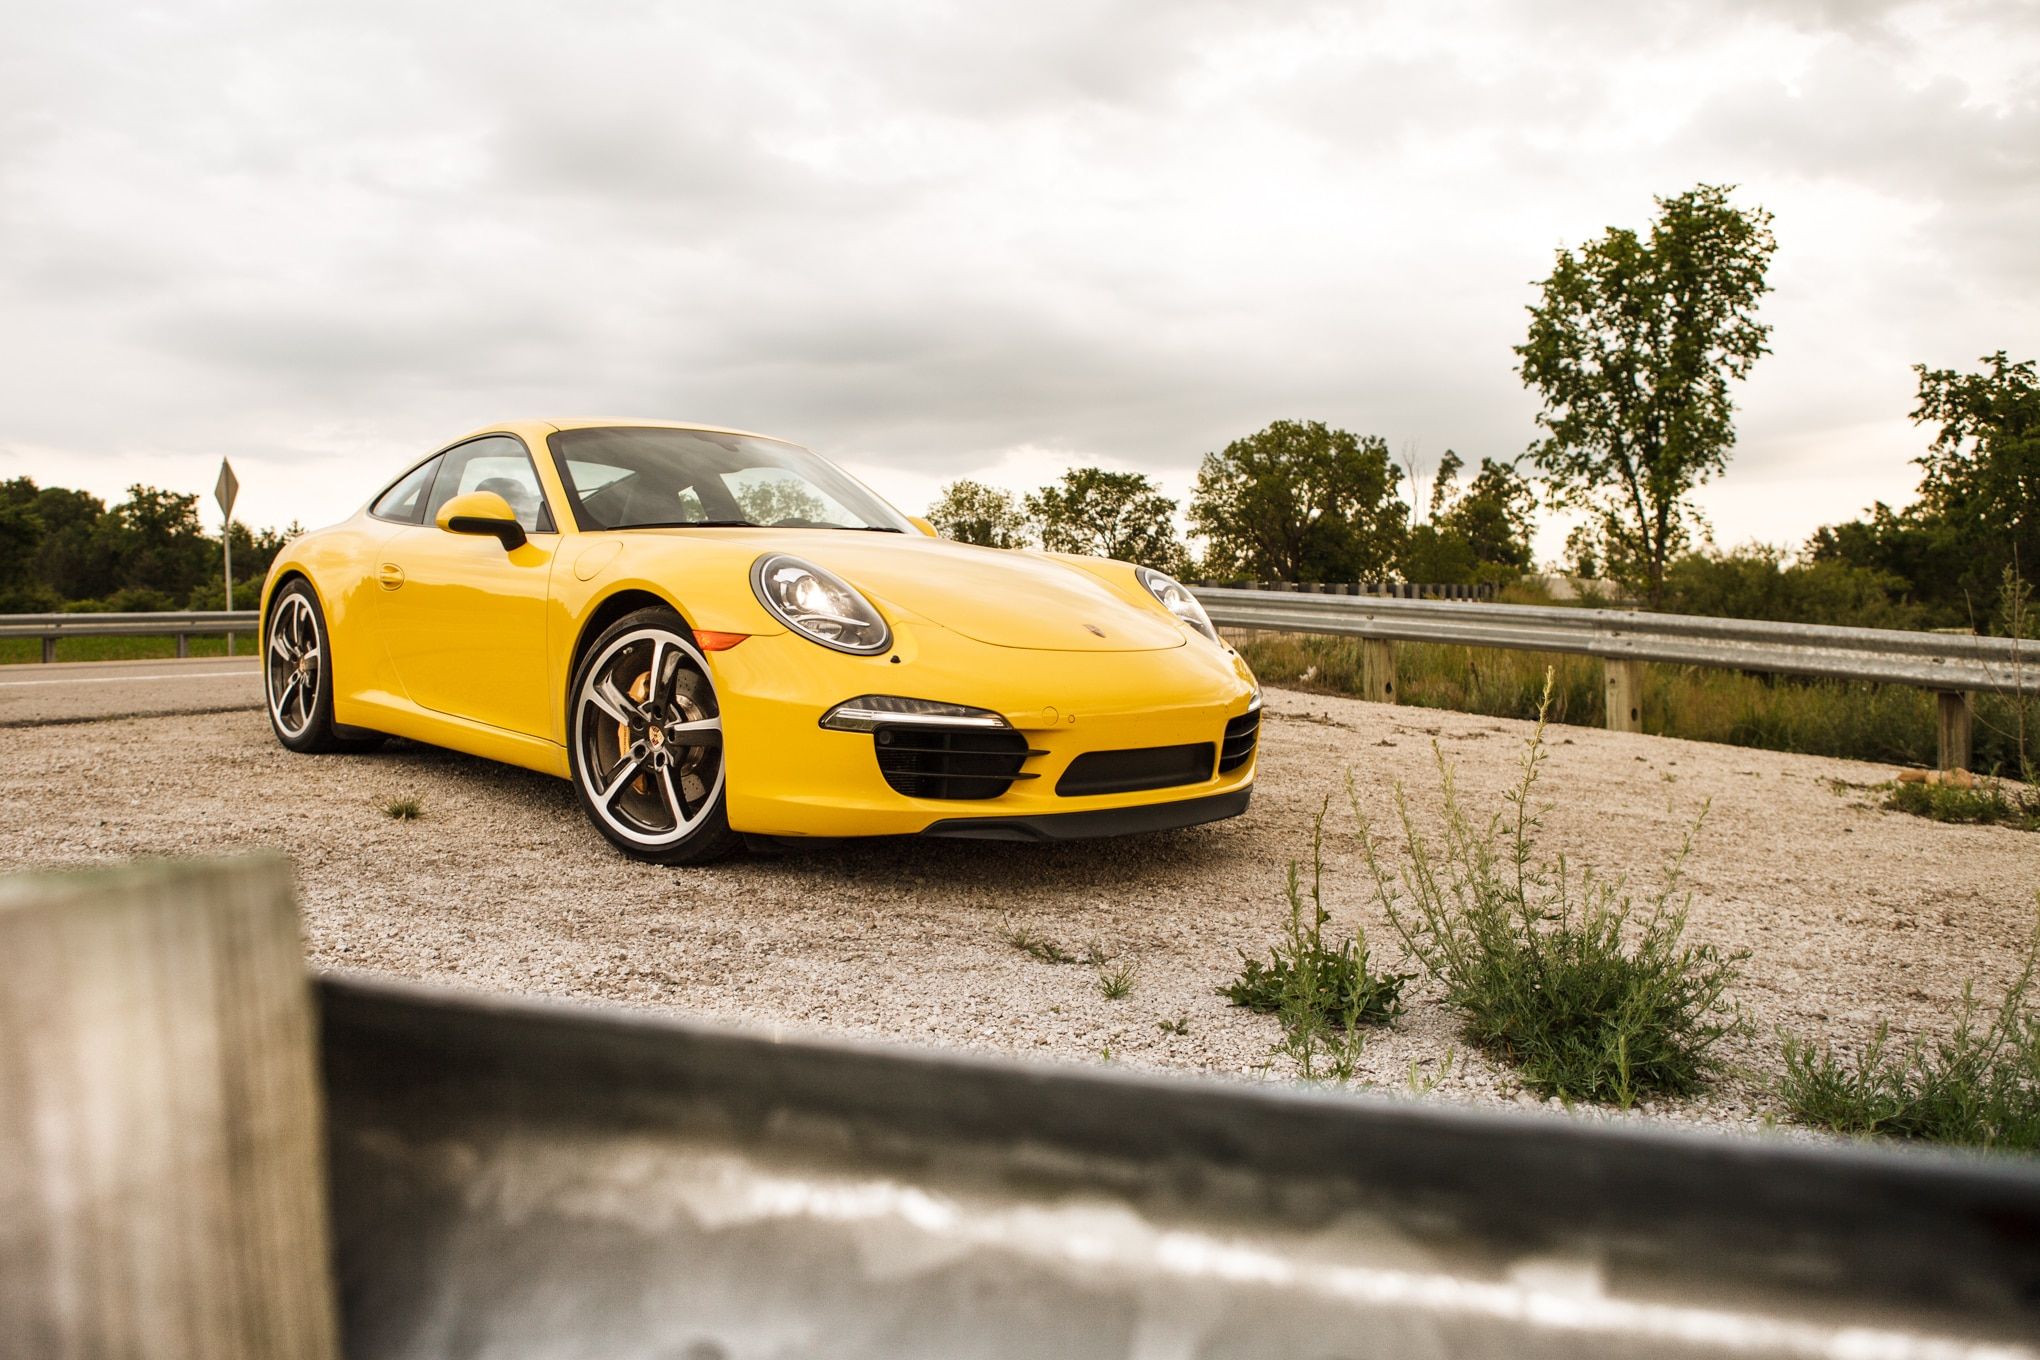 2013 Porsche 911 Carrera S Front Right View 11